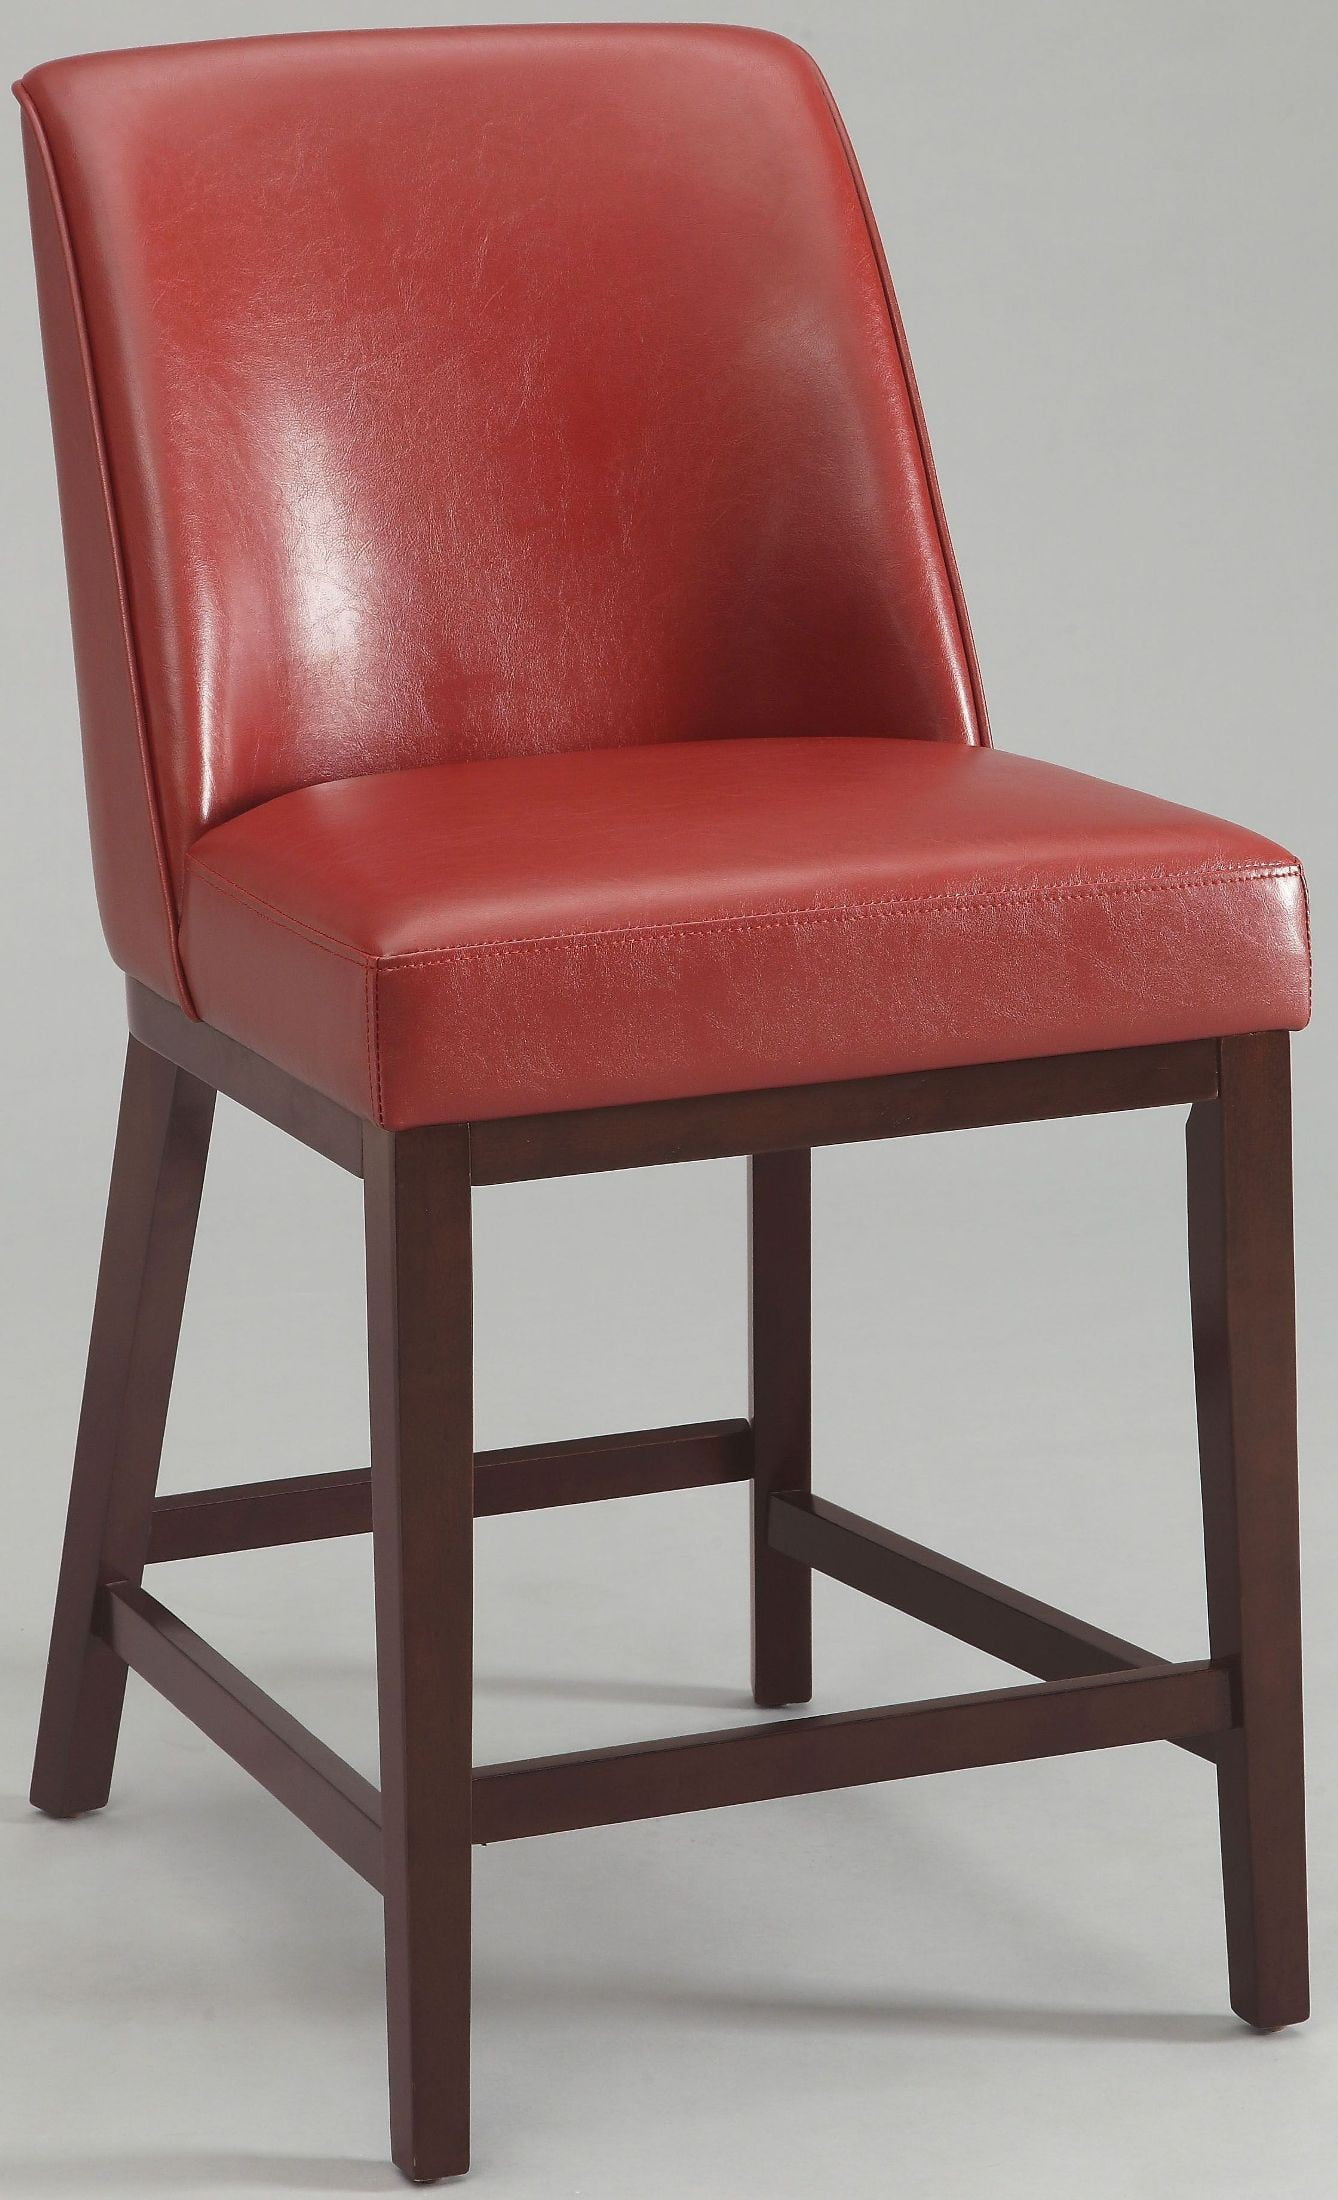 Red Counter Height Chairs Valor Red Counter Height Chair Set Of 2 From Acme